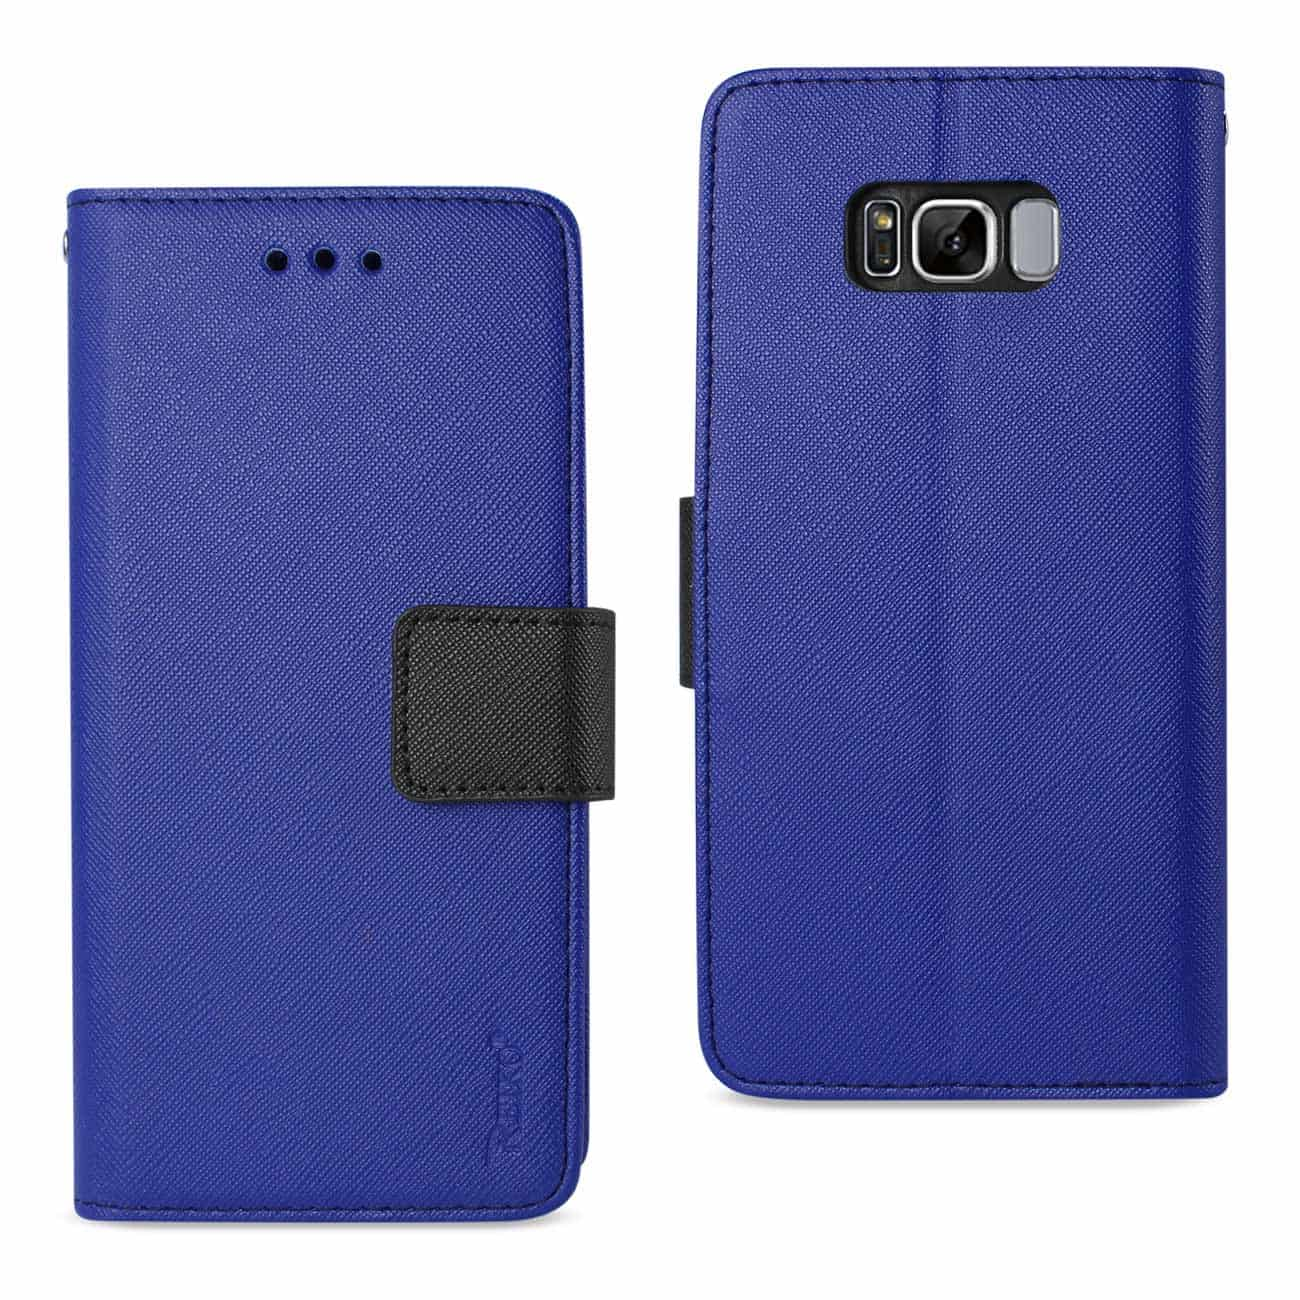 SAMSUNG GALAXY S8 EDGE/ S8 PLUS 3-IN-1 WALLET CASE IN NAVY